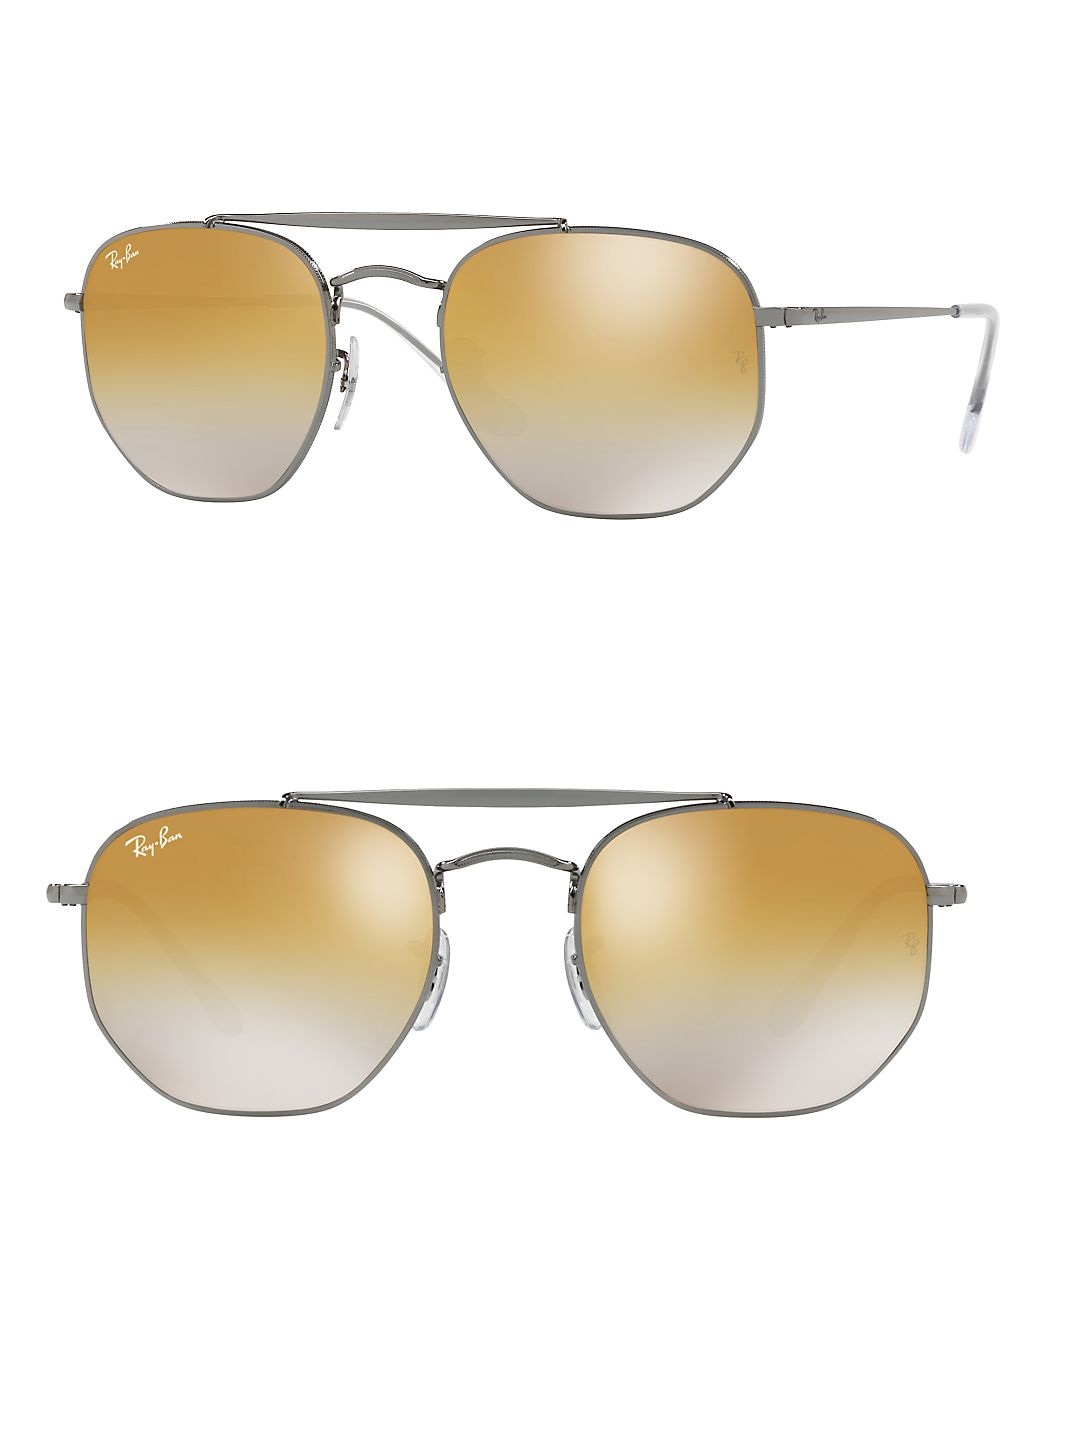 Ray-Ban Unisex RB3648 Marshall Sunglasses, 51mm